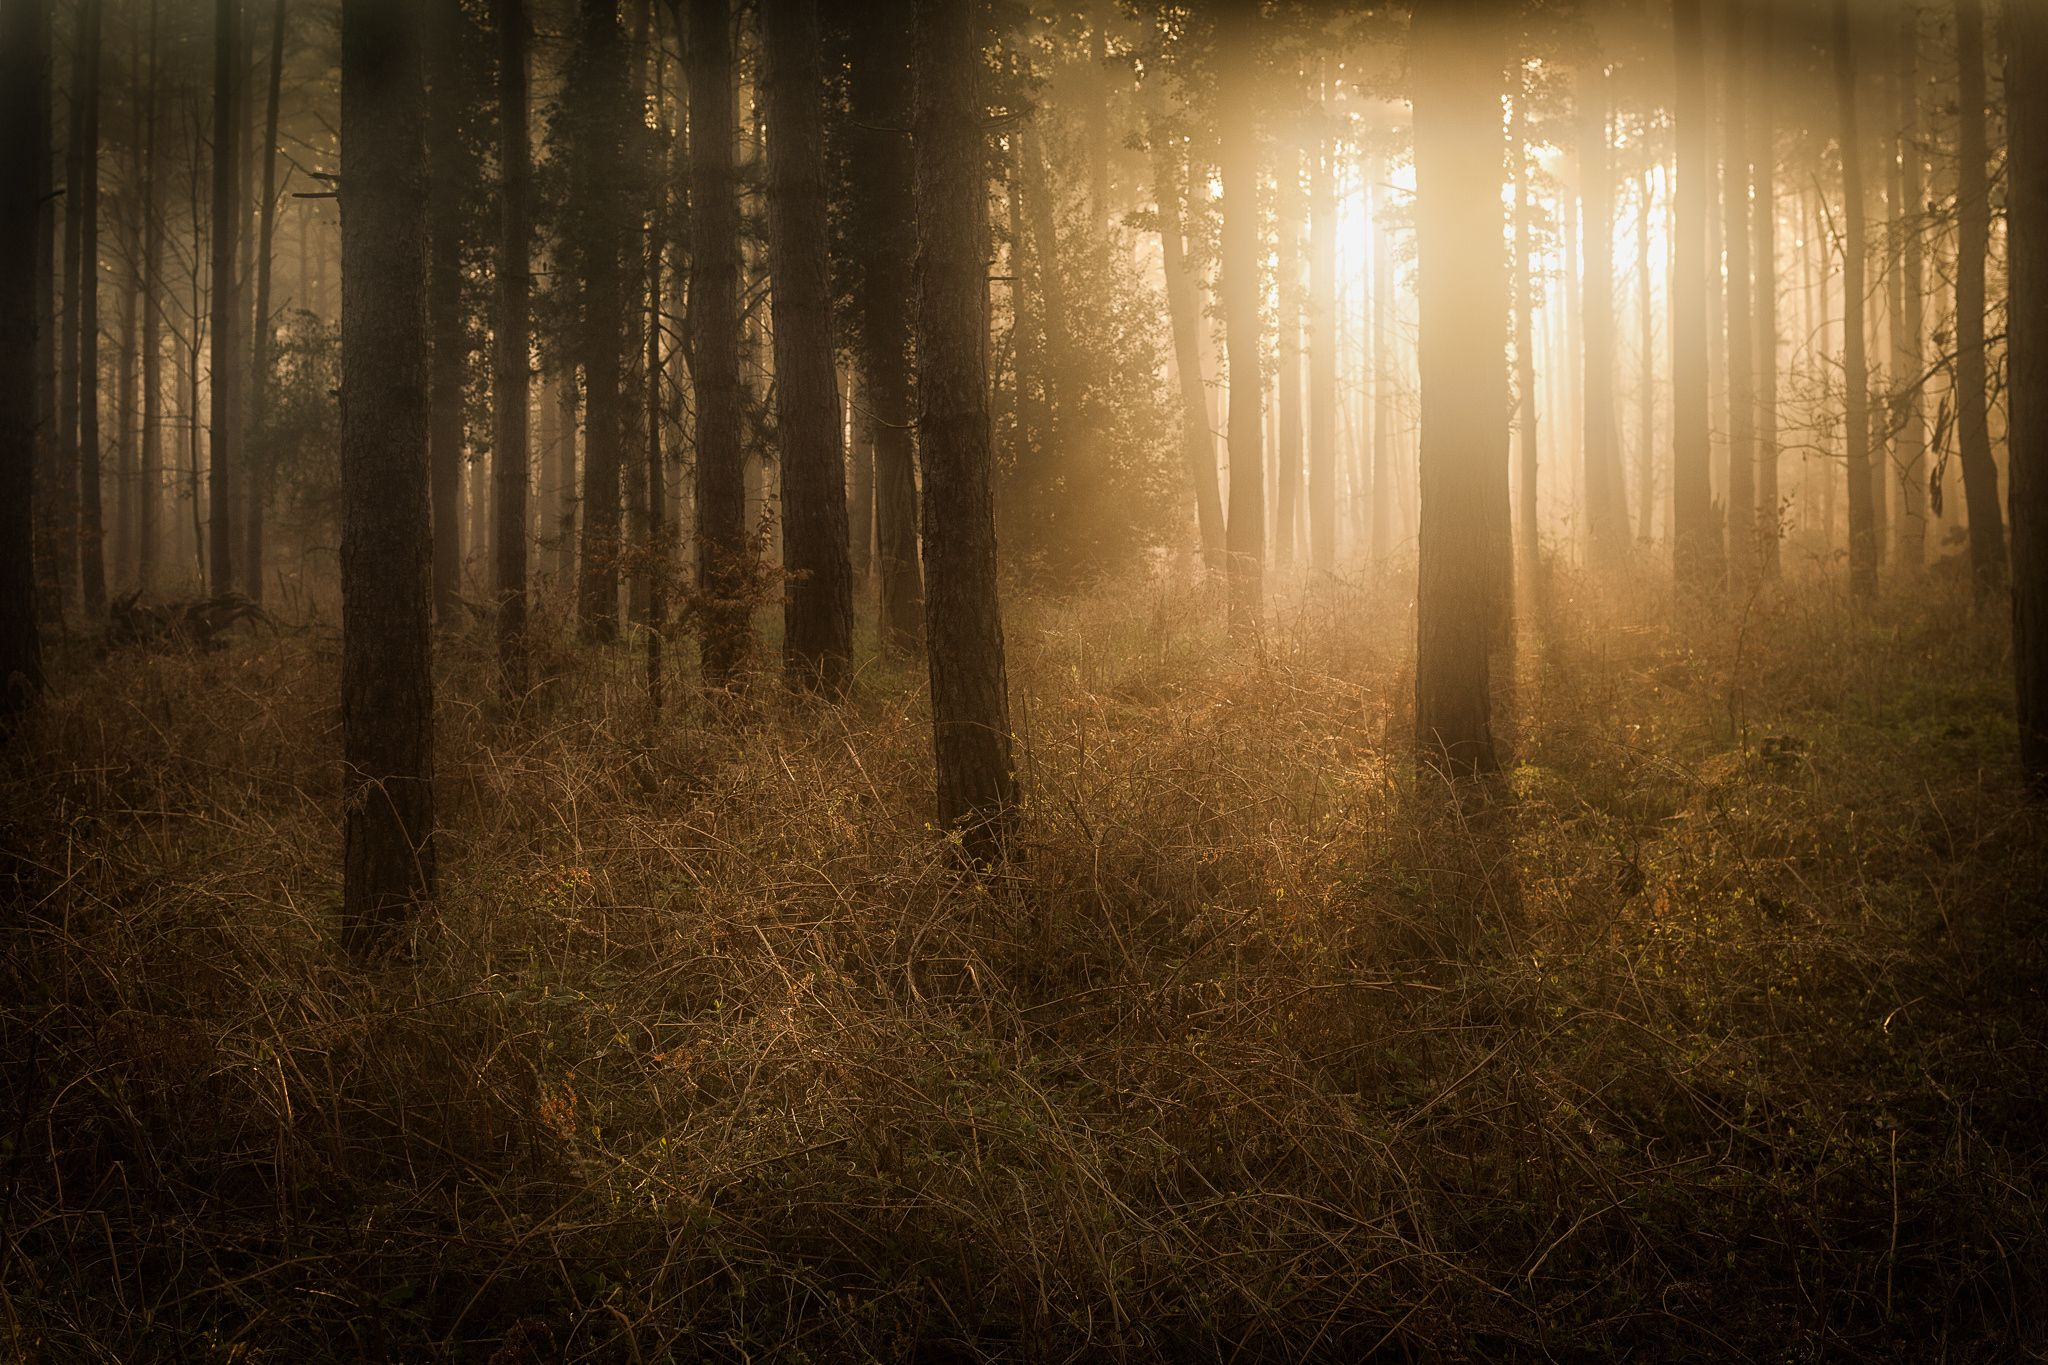 Photo Glory by Lee Acaster on 500px